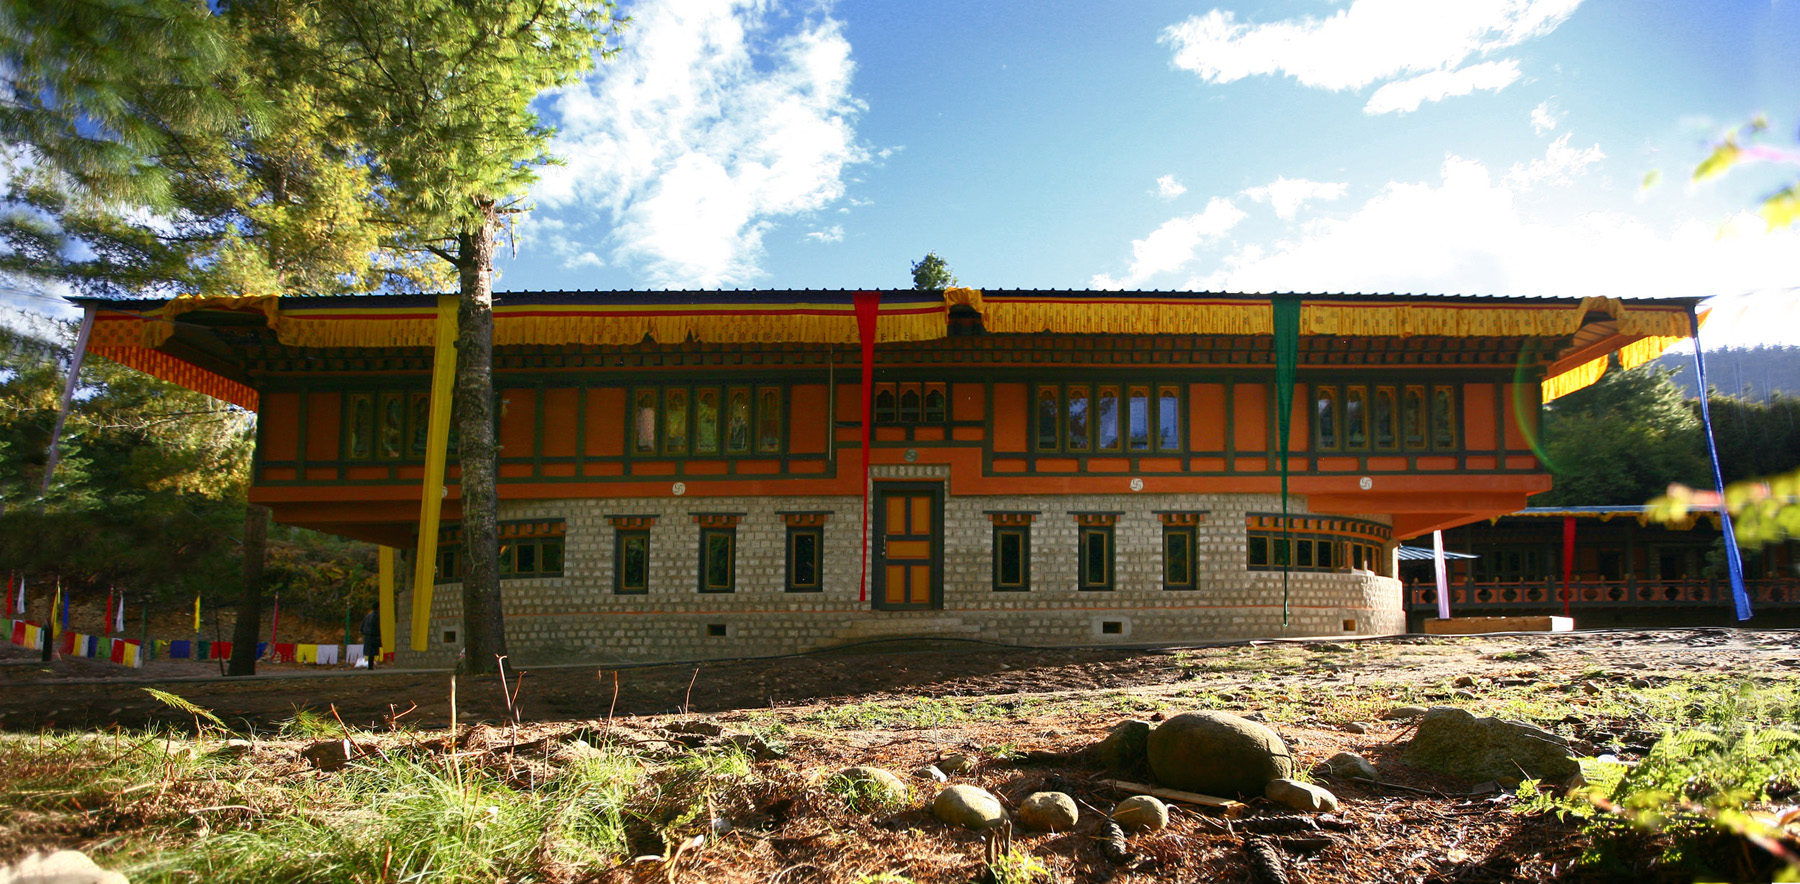 Bhutan Happiness Centre by 1+1-2 Architects - Image courtesy of WAF